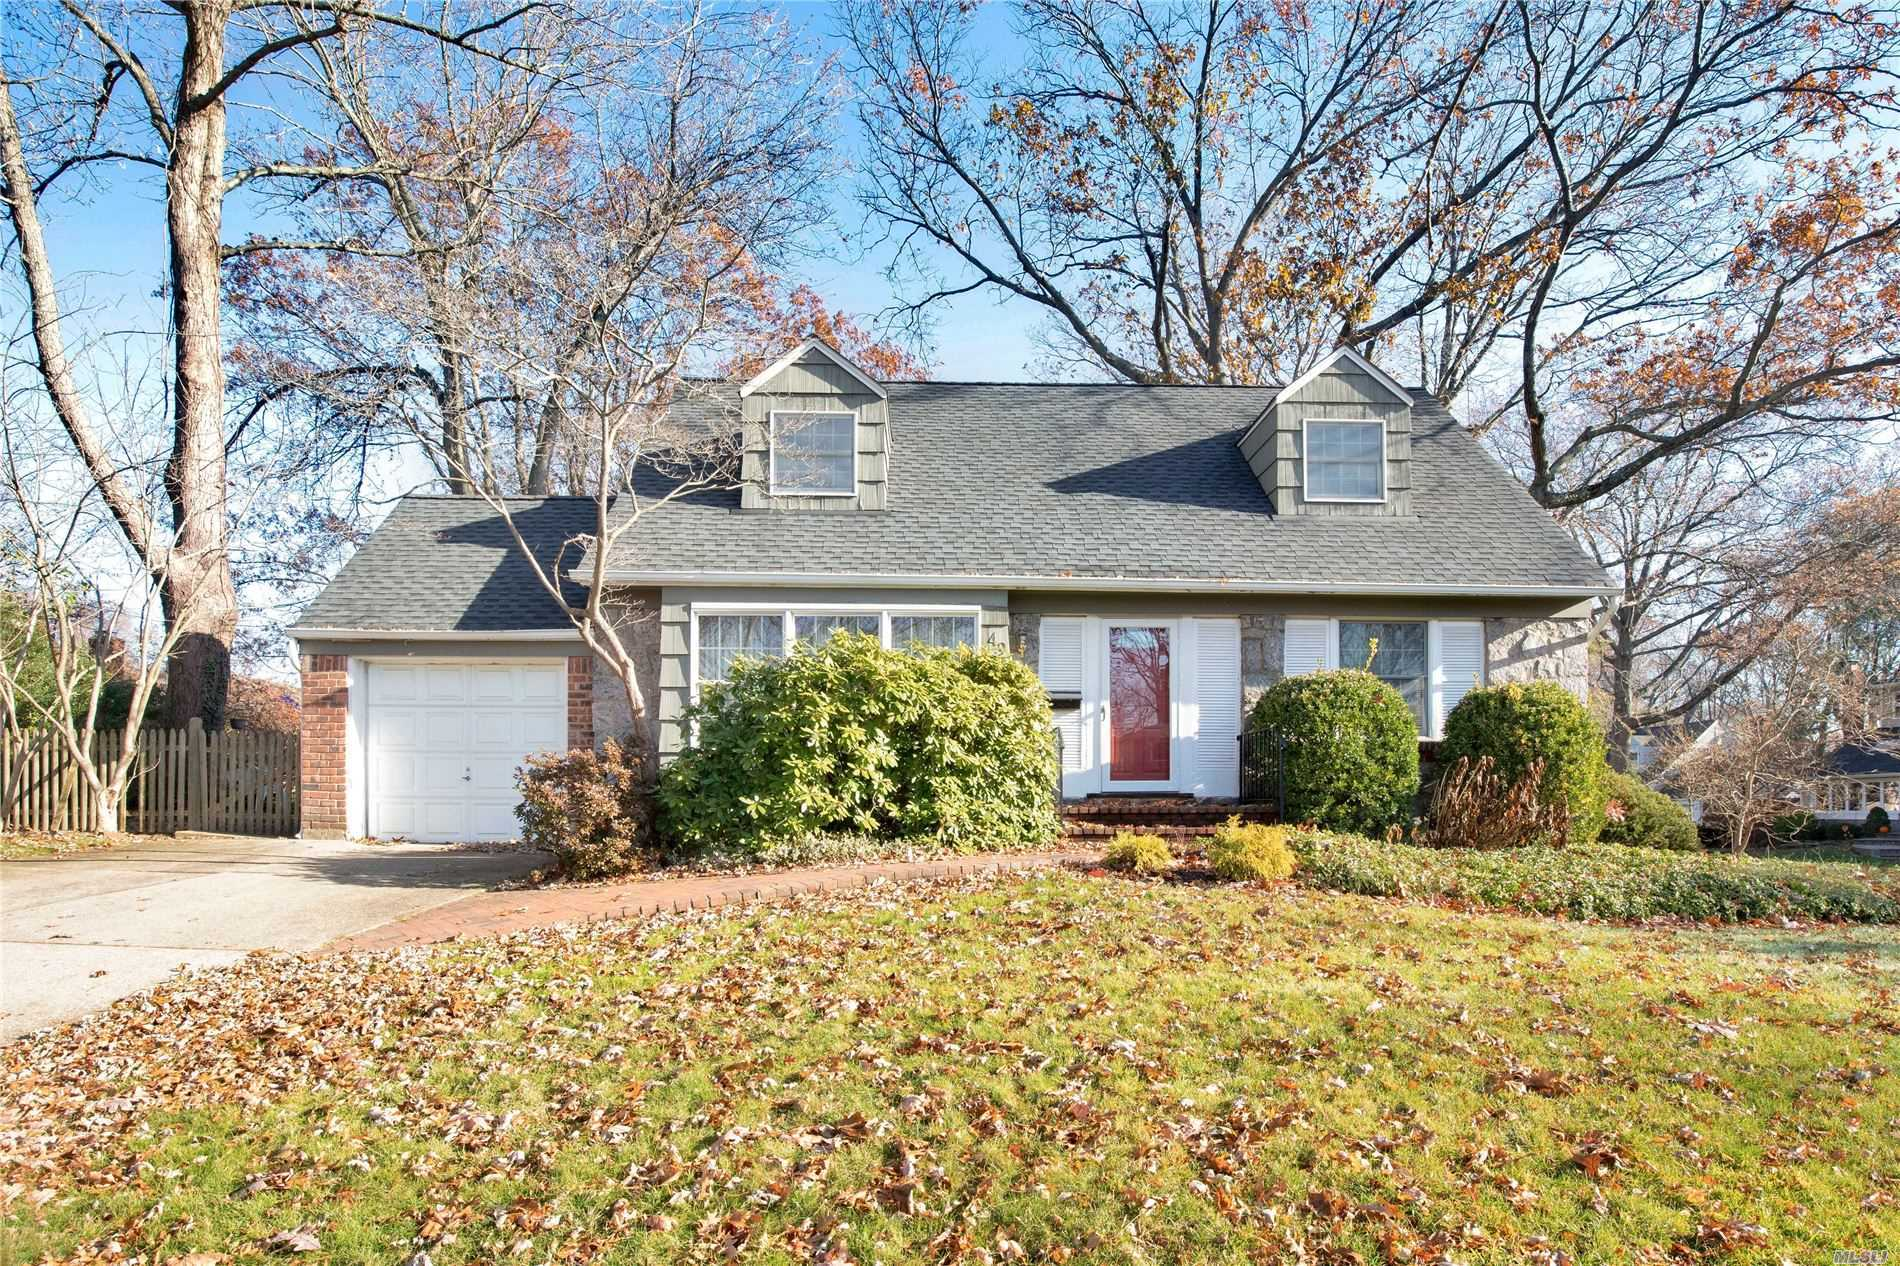 49 Simpson Dr - Old Bethpage, New York